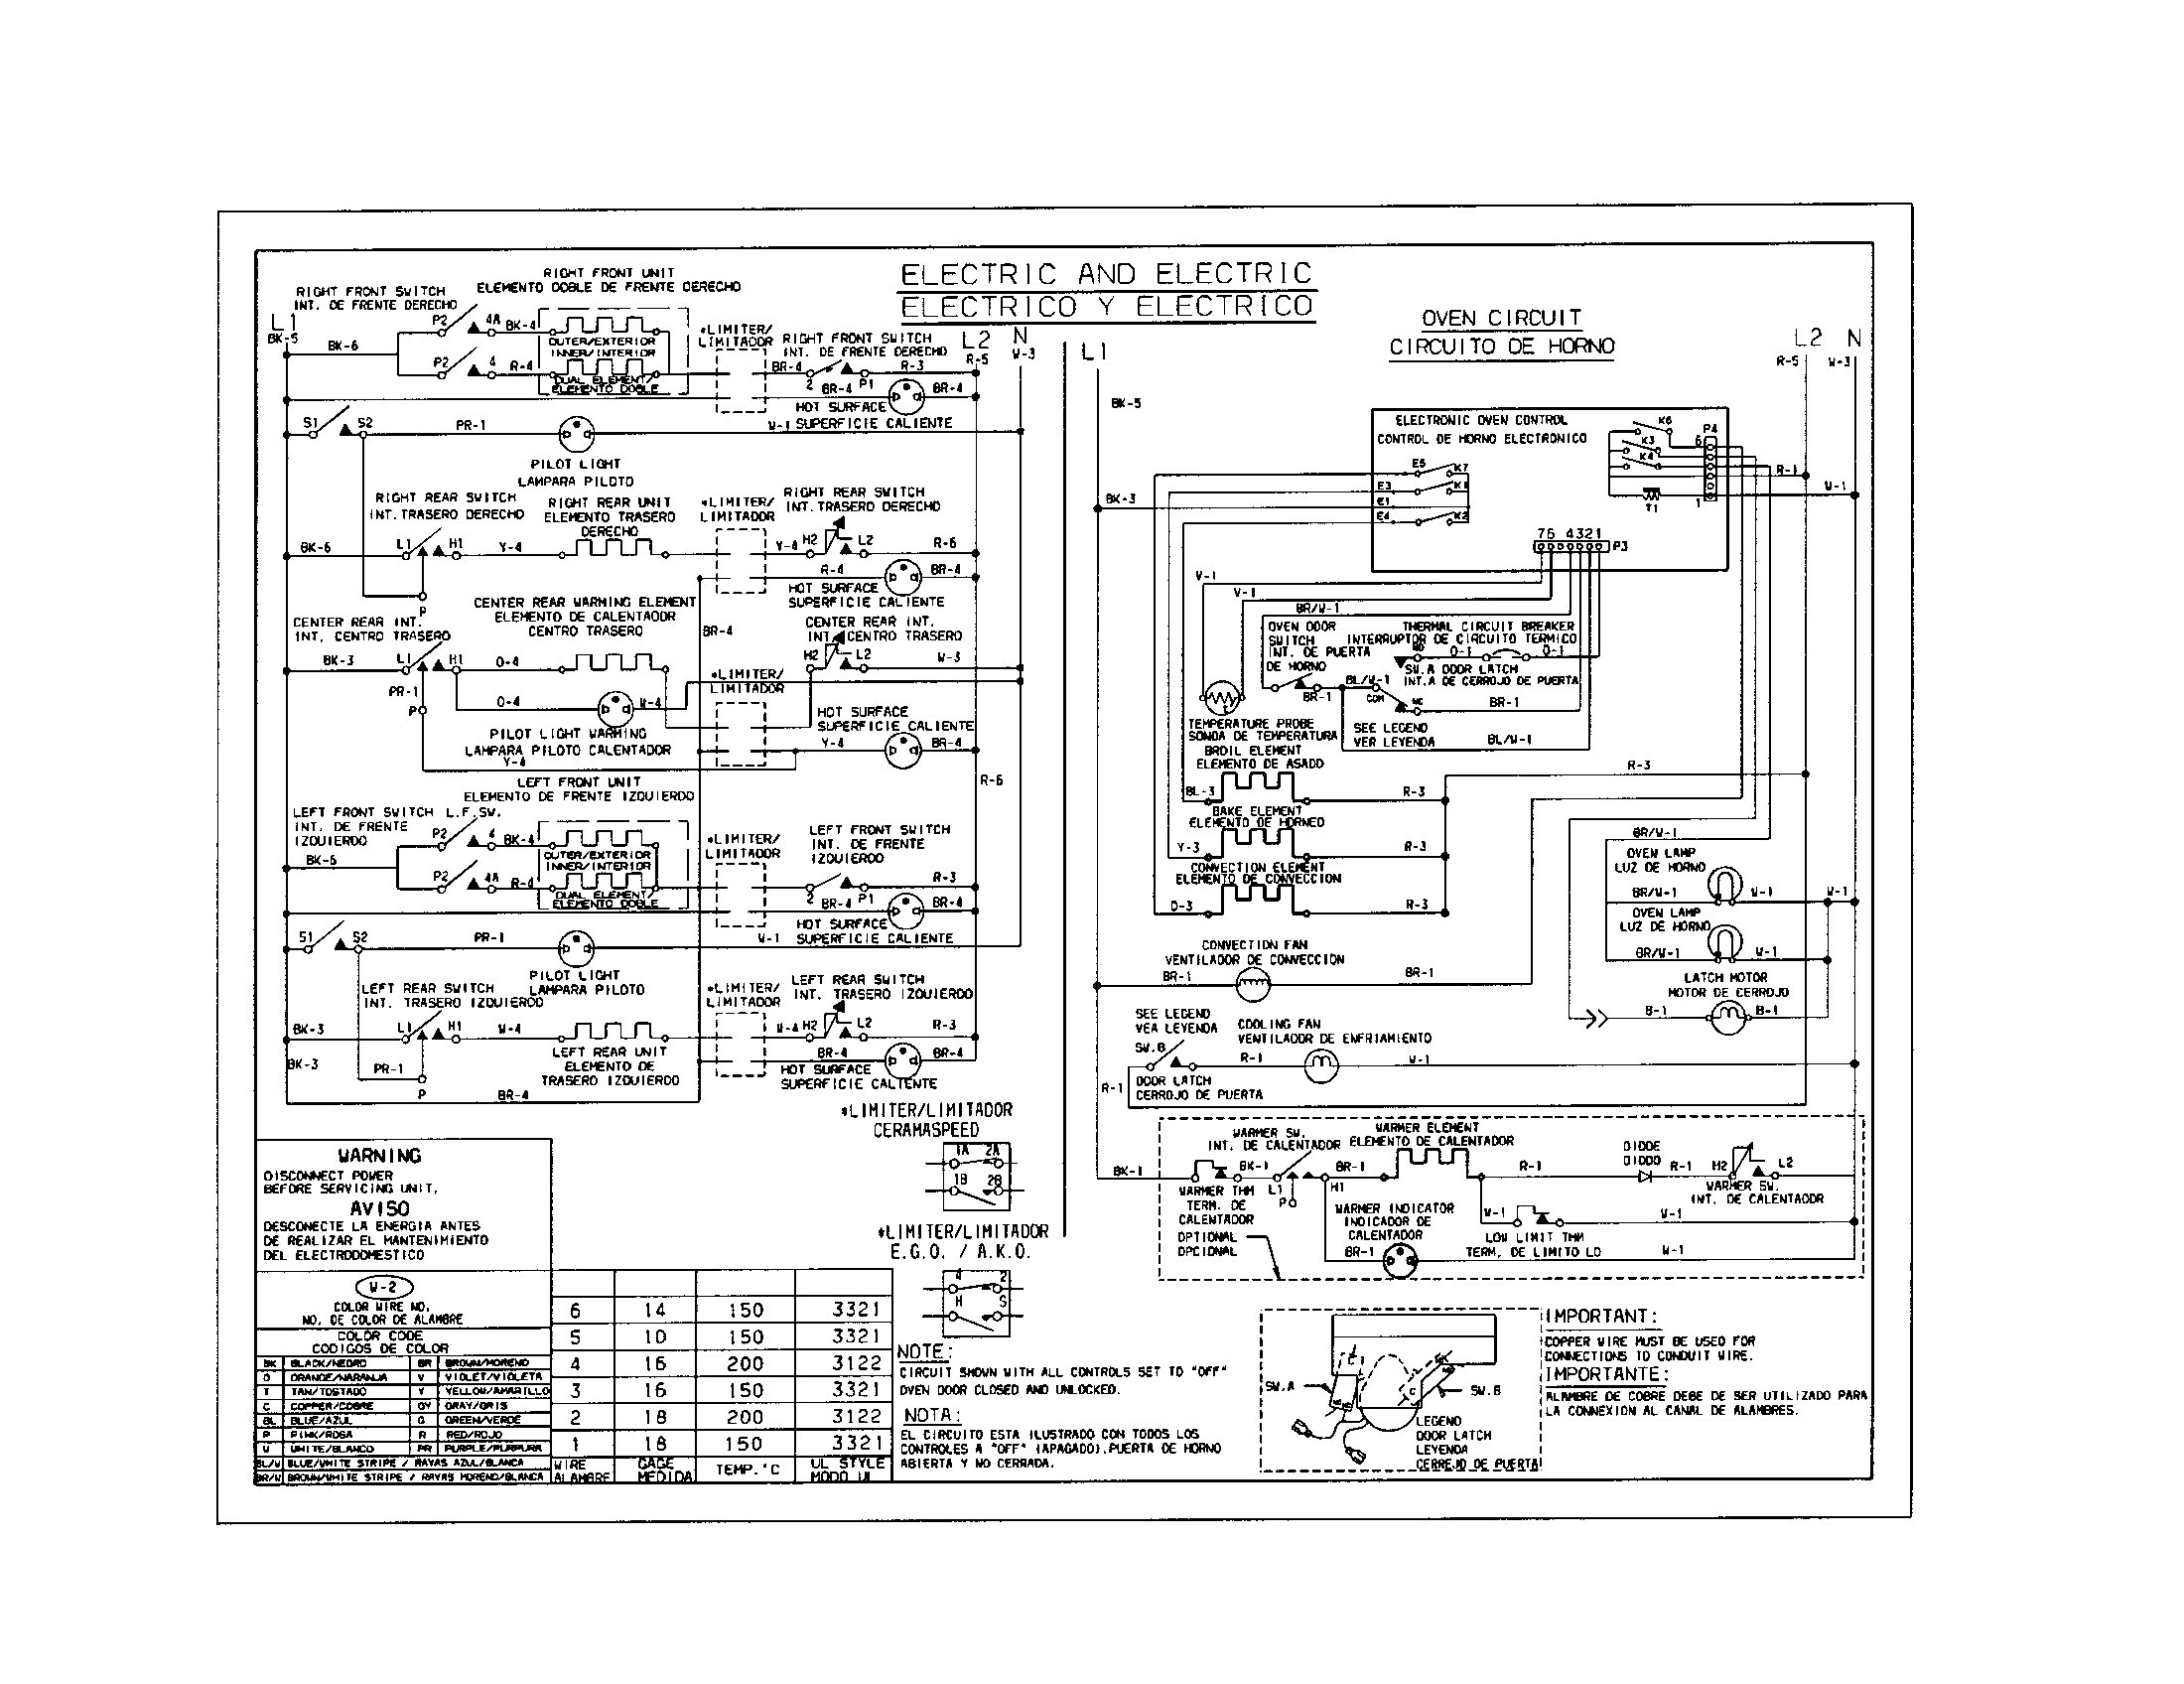 Kenmore Oven Wiring Diagram Archive Of Automotive Electric Wall Schematics Rh Thyl Co Uk